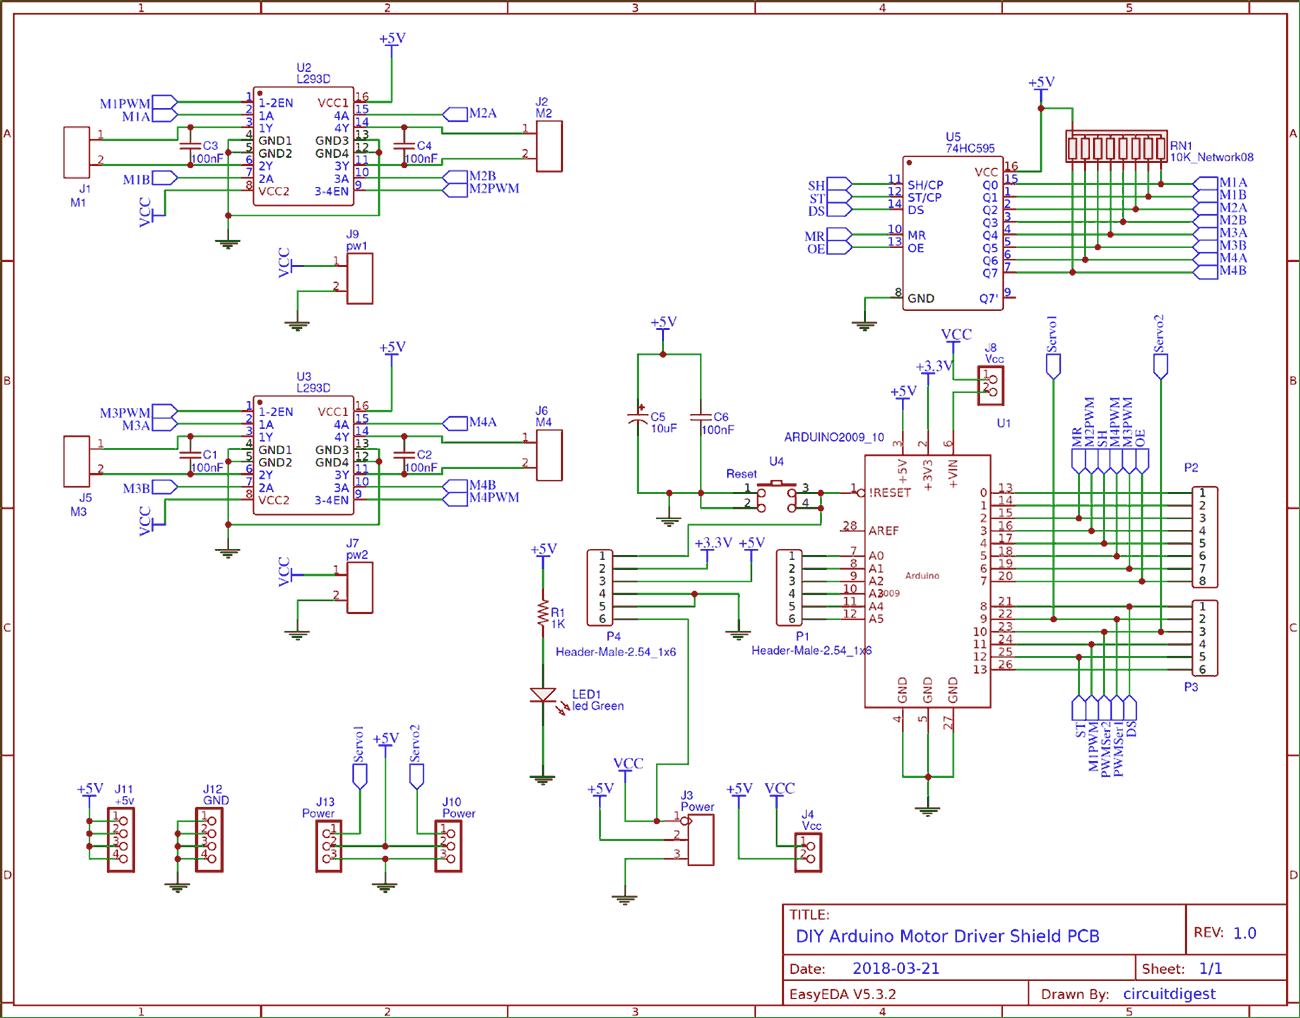 hight resolution of circuit diagram for diy arduino motor driver shield pcb